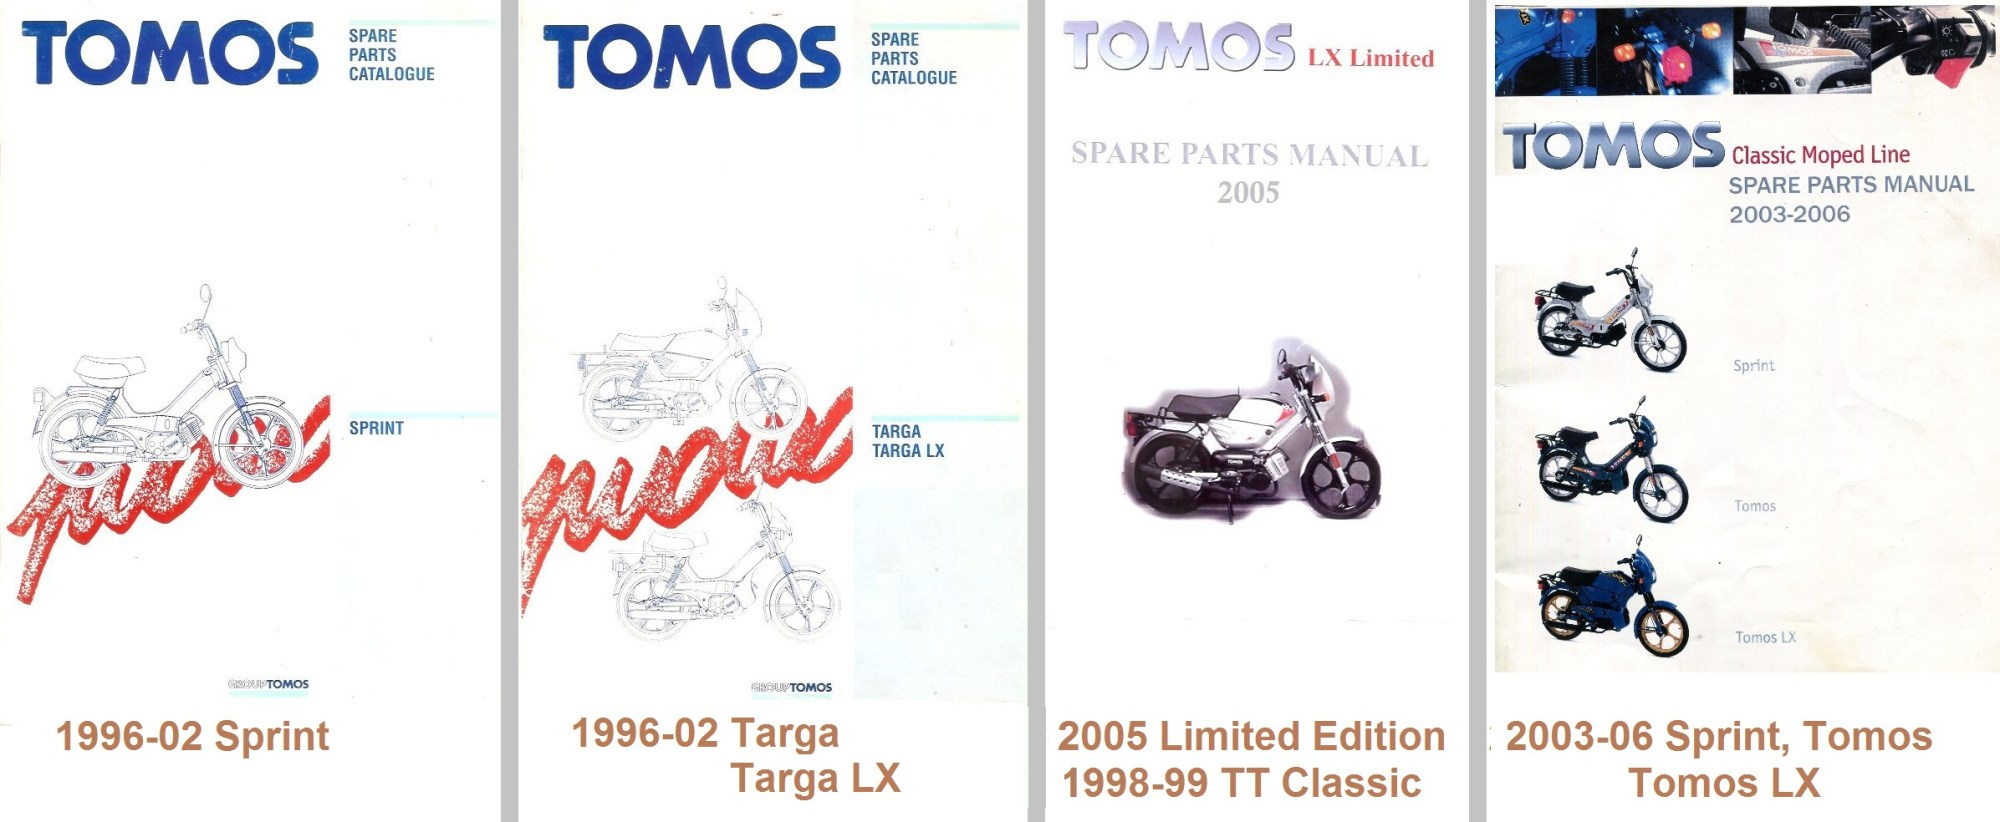 Tomos Parts Diagram - Diagrams Catalogue